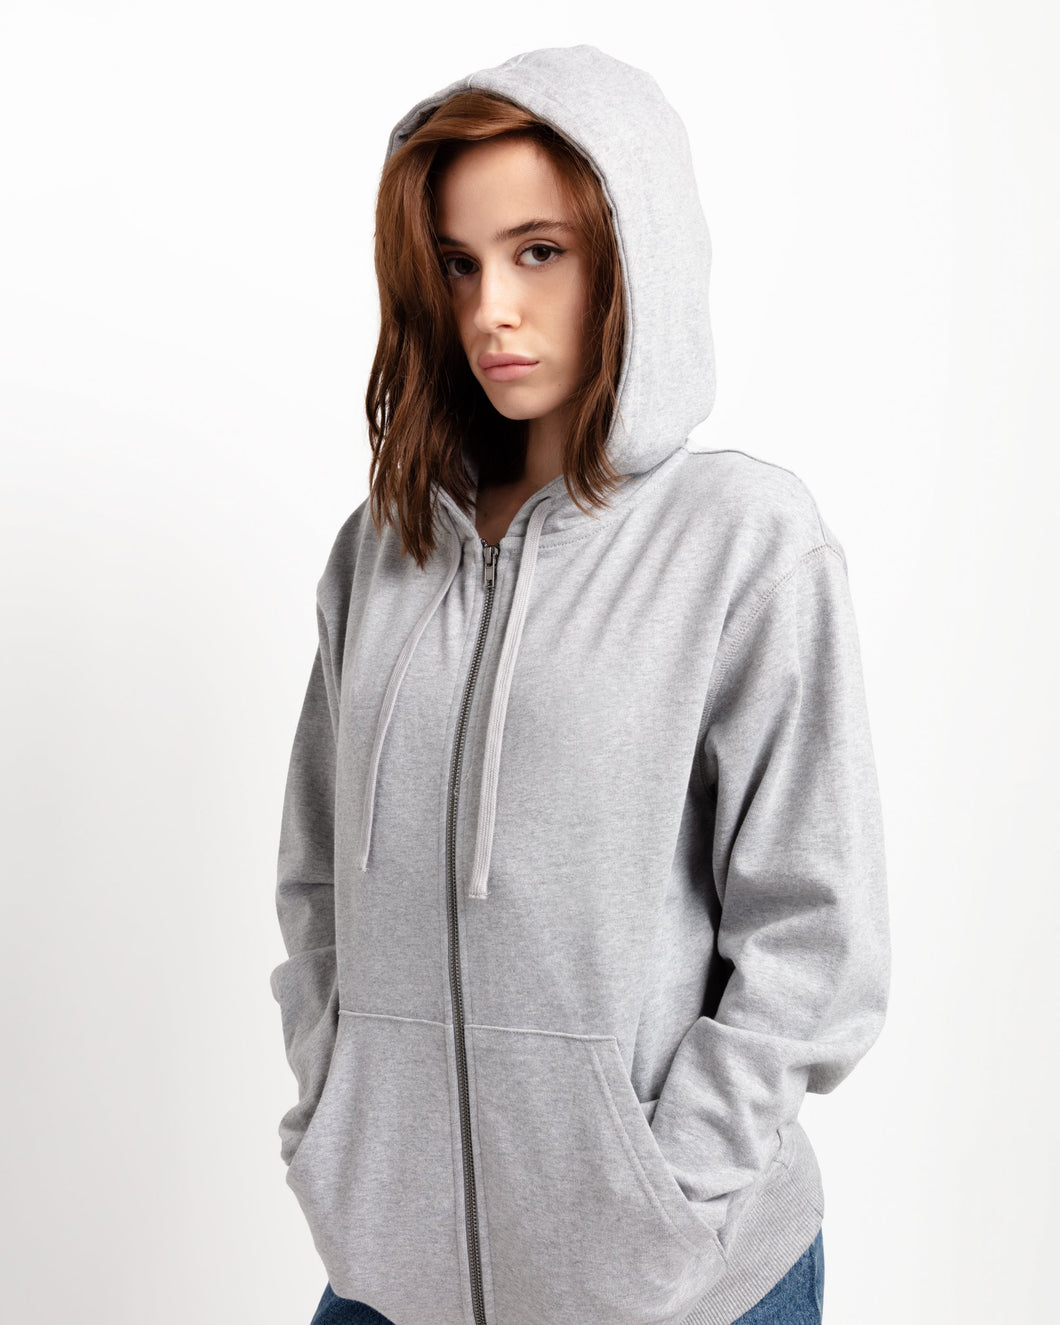 x karla The Zip Hoodie in Heather Grey